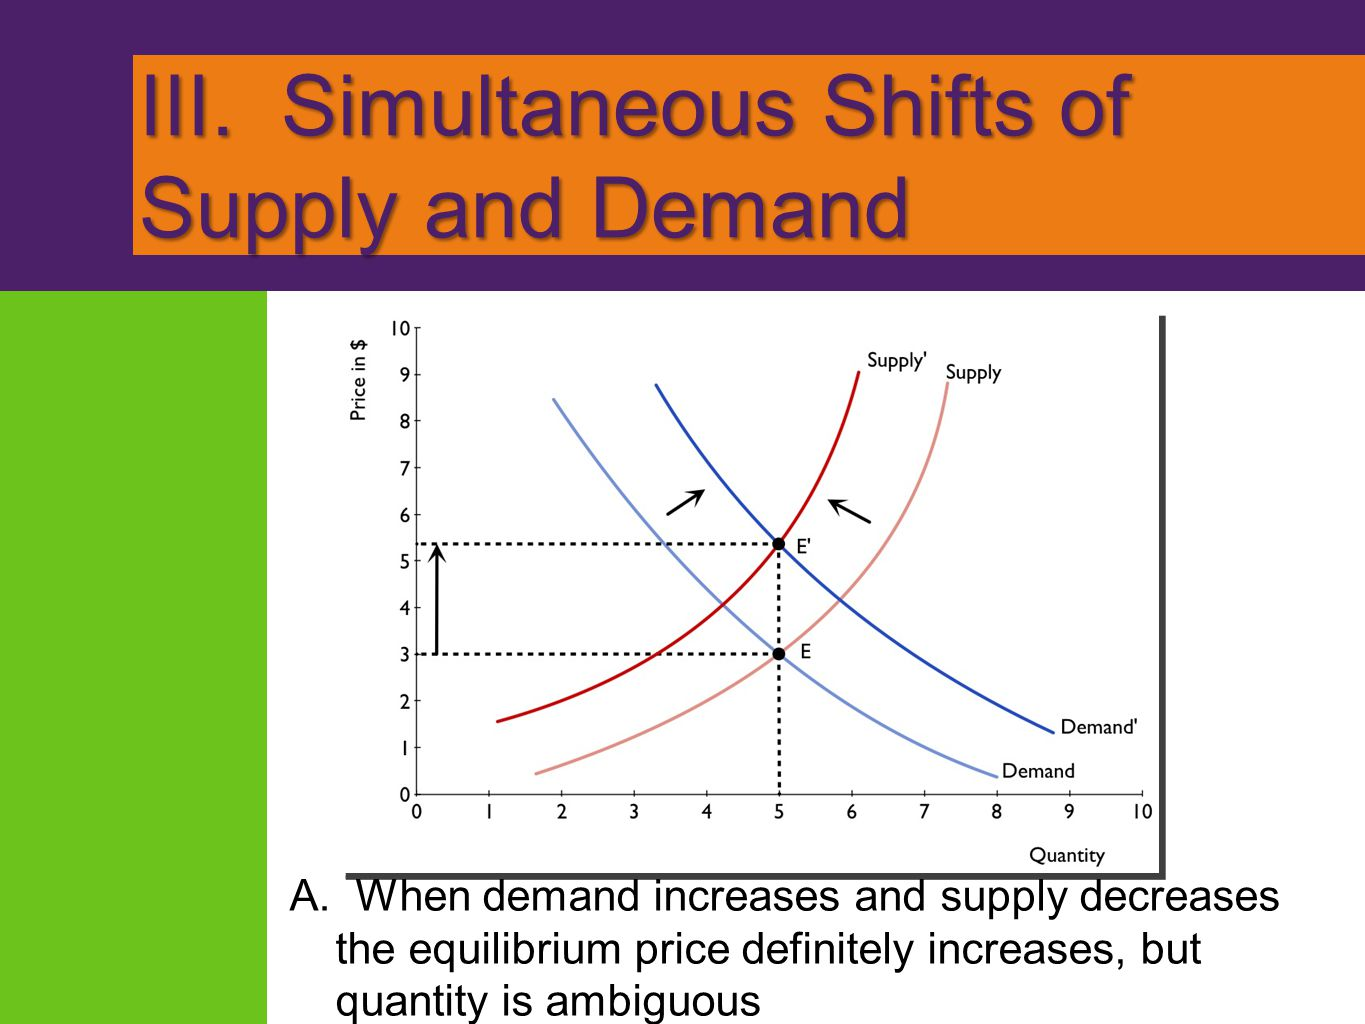 III. Simultaneous Shifts of Supply and Demand